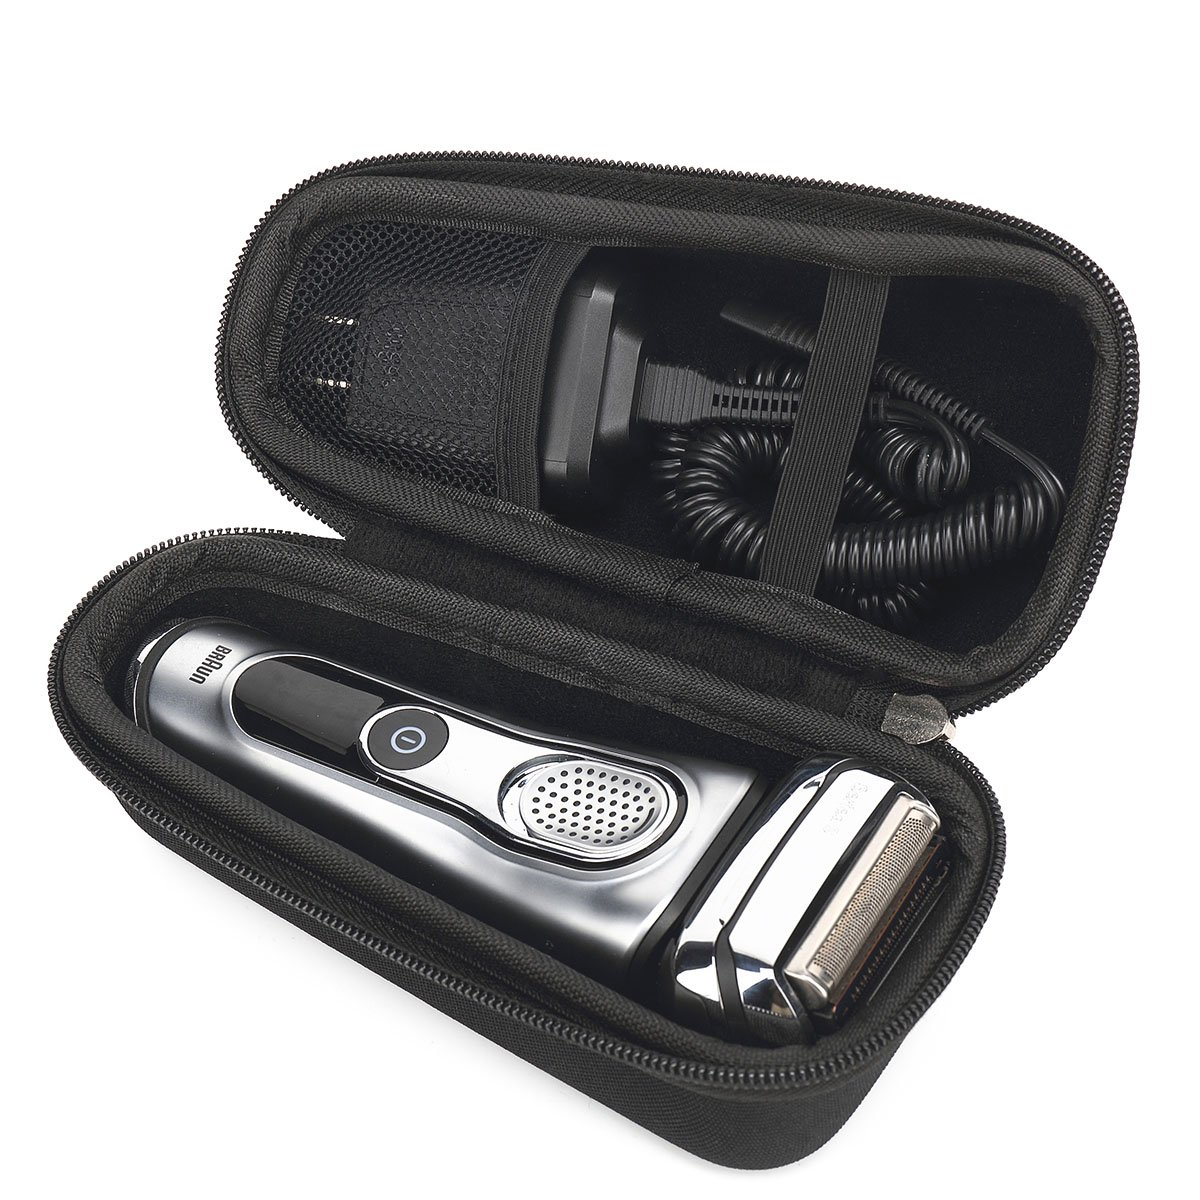 Hard Travel carrying Case for Braun Series 5 7 9 5090 5190cc 9290CC 790cc 9090cc Men Shavers Razor with mesh bag by Aproca